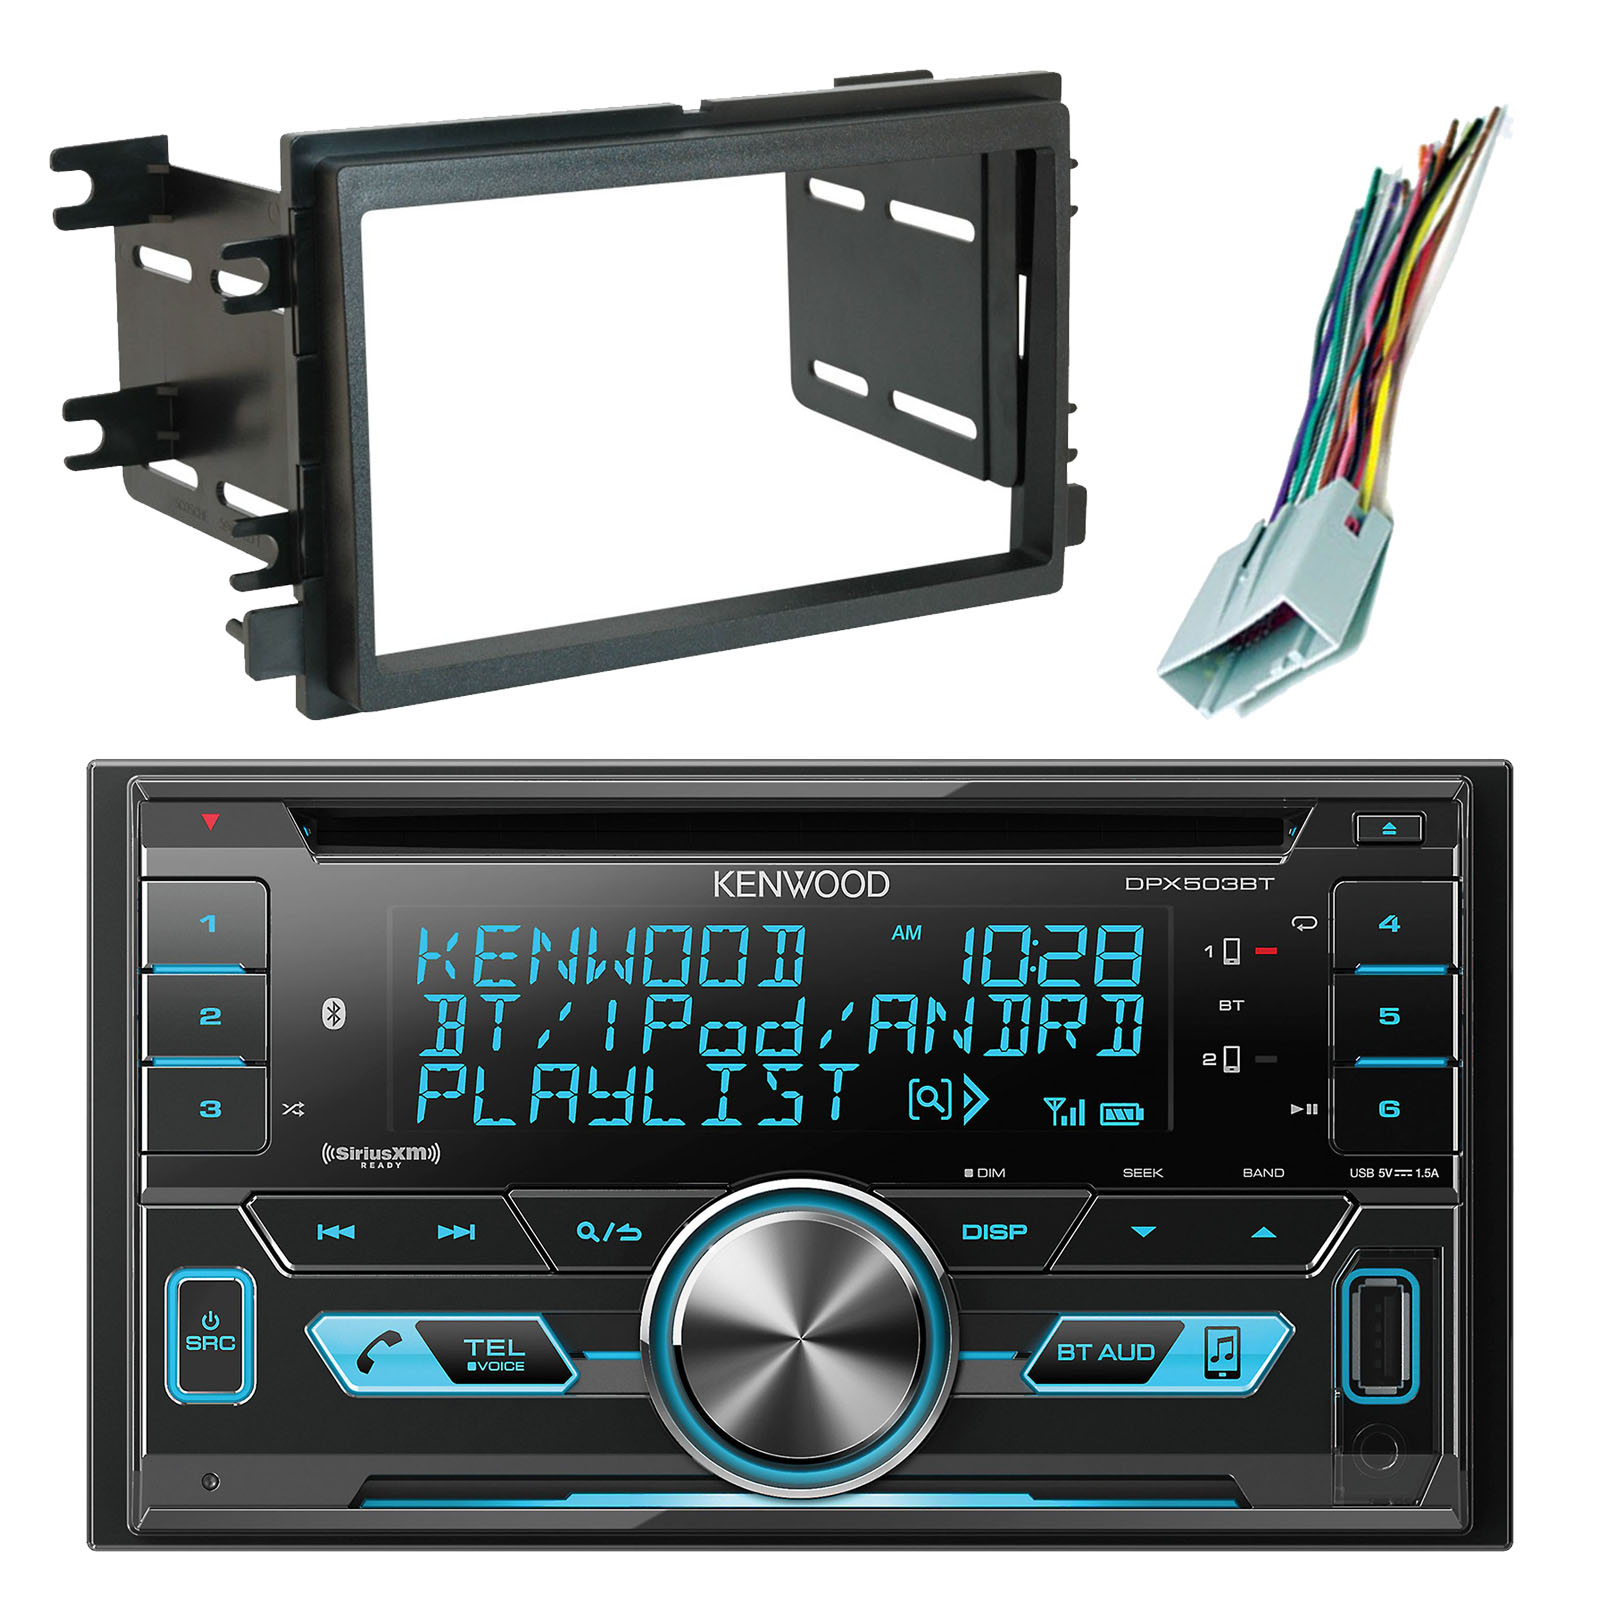 Usb Car Radio Wiring Harness Electrical Diagrams Kenwood Diagram Amfm Dpx503bt Double Din Bluetooth Cd Am Fm Audio Nissan